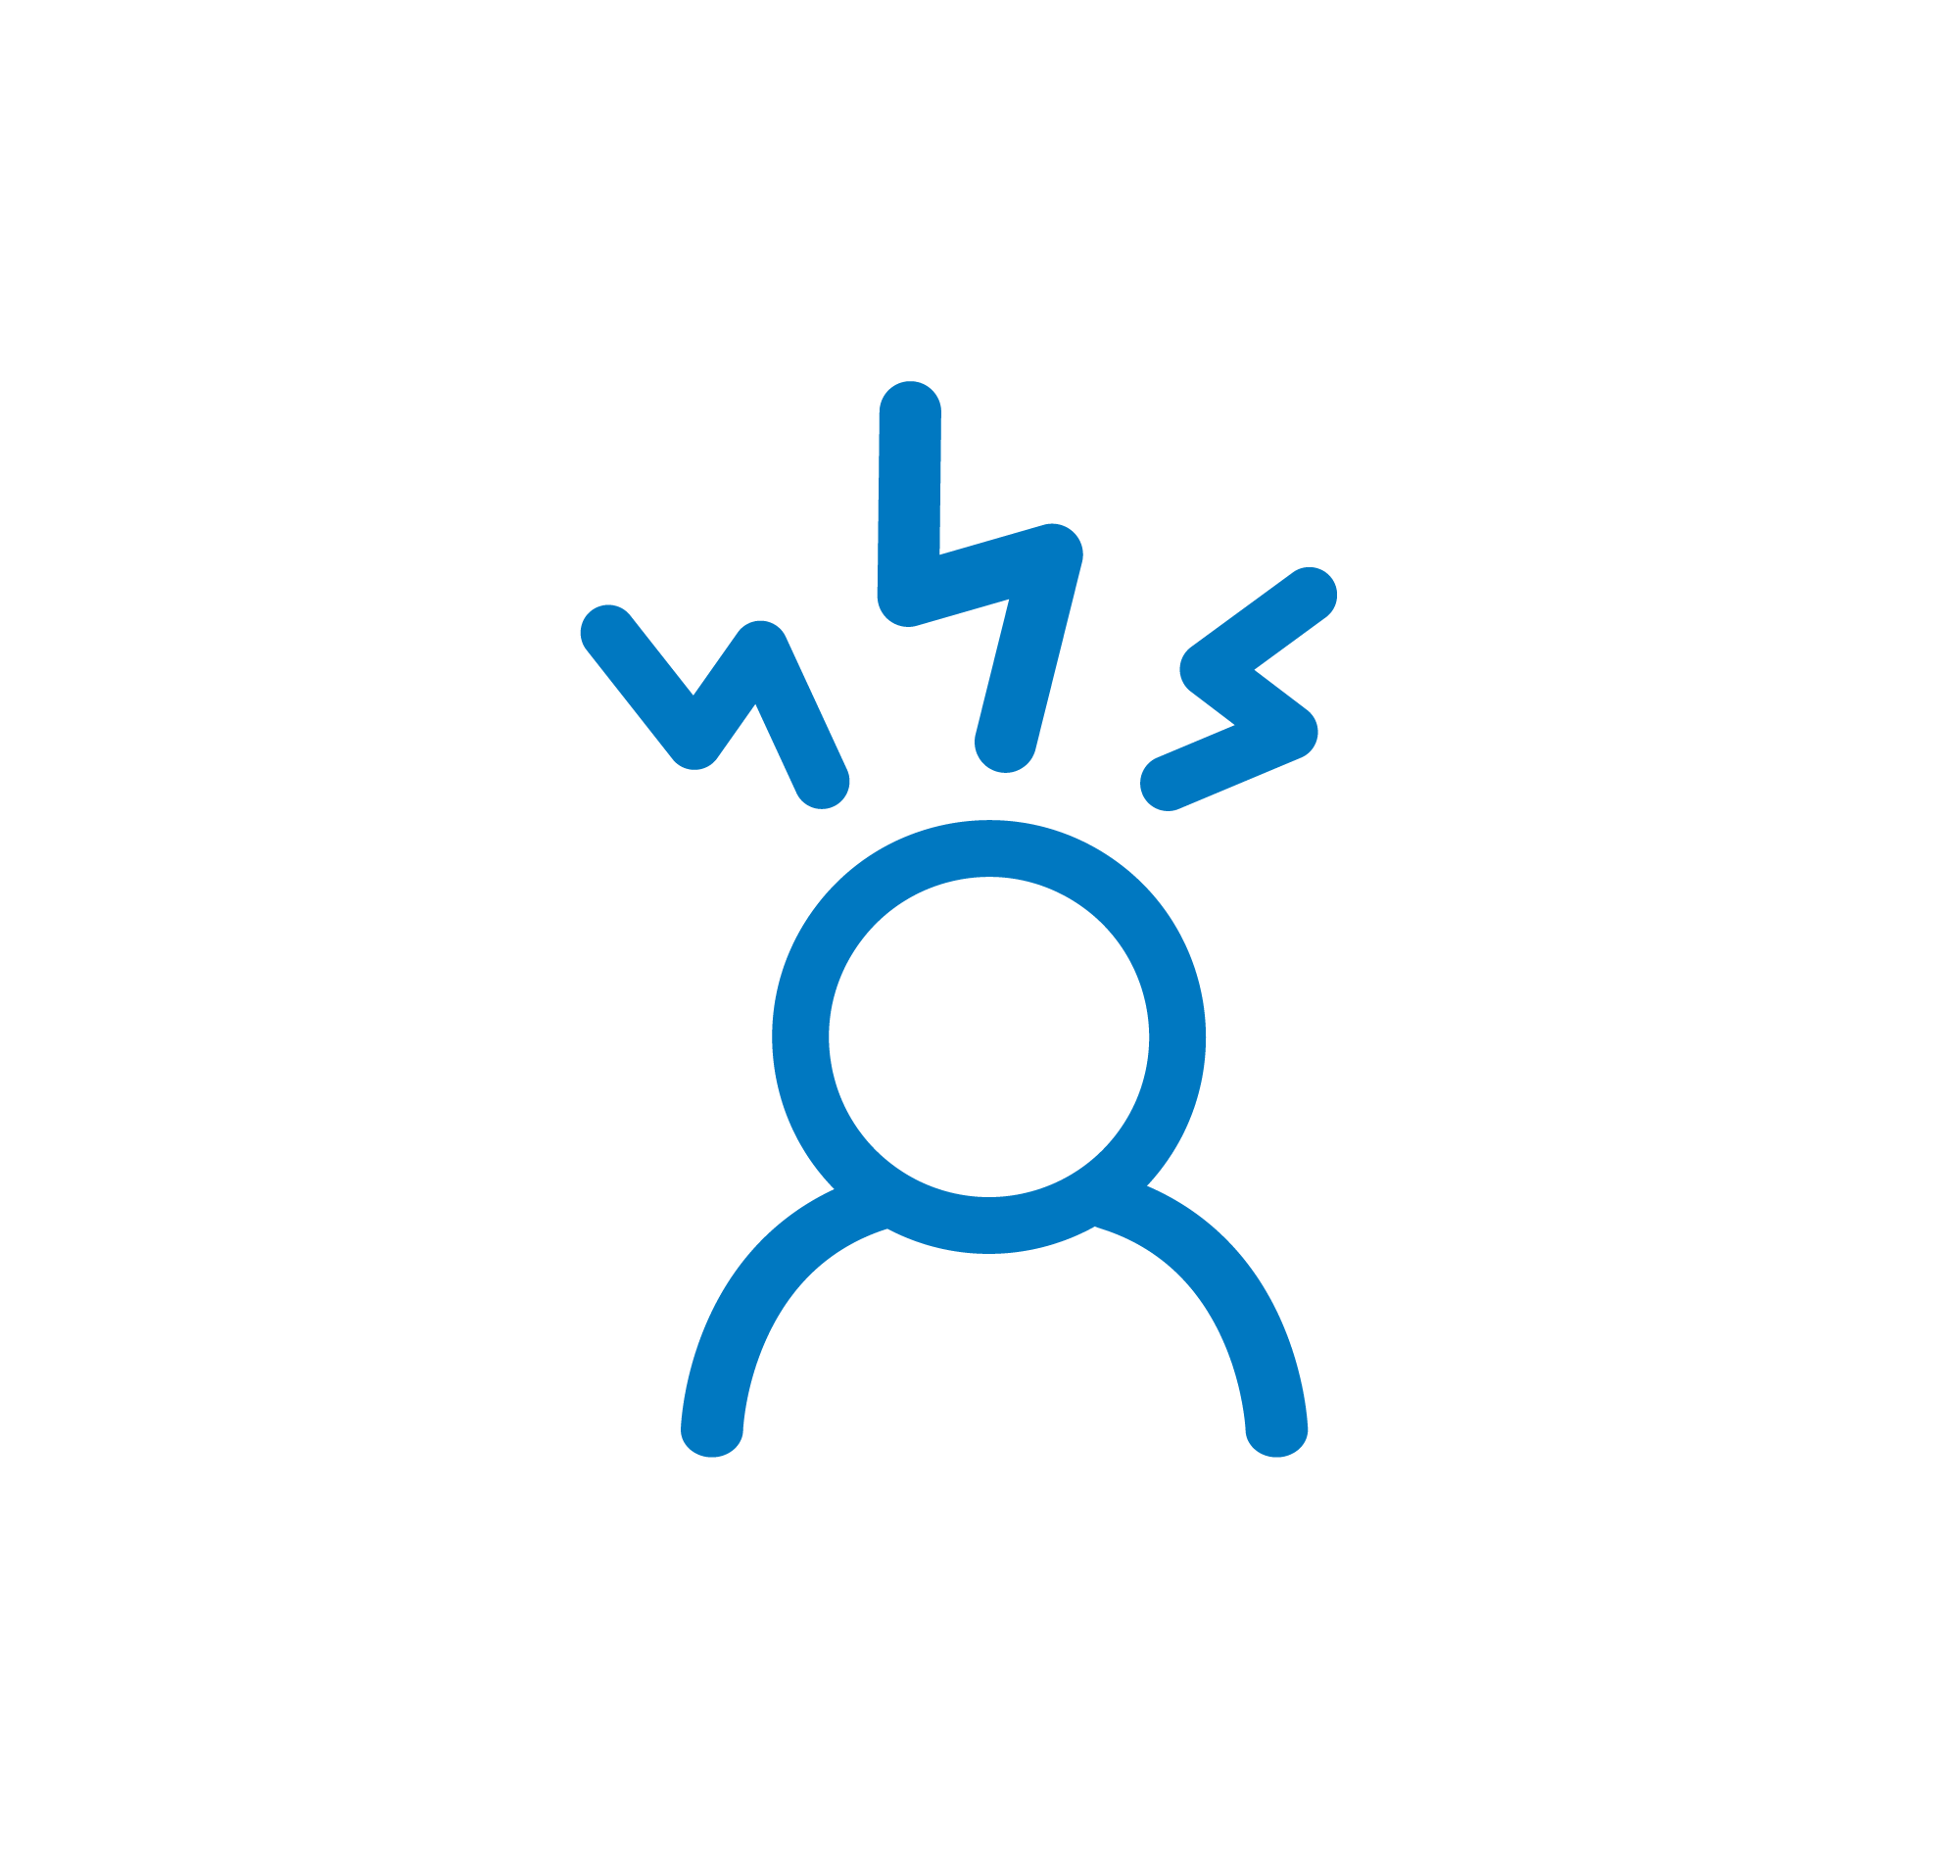 problem_icon-13.png